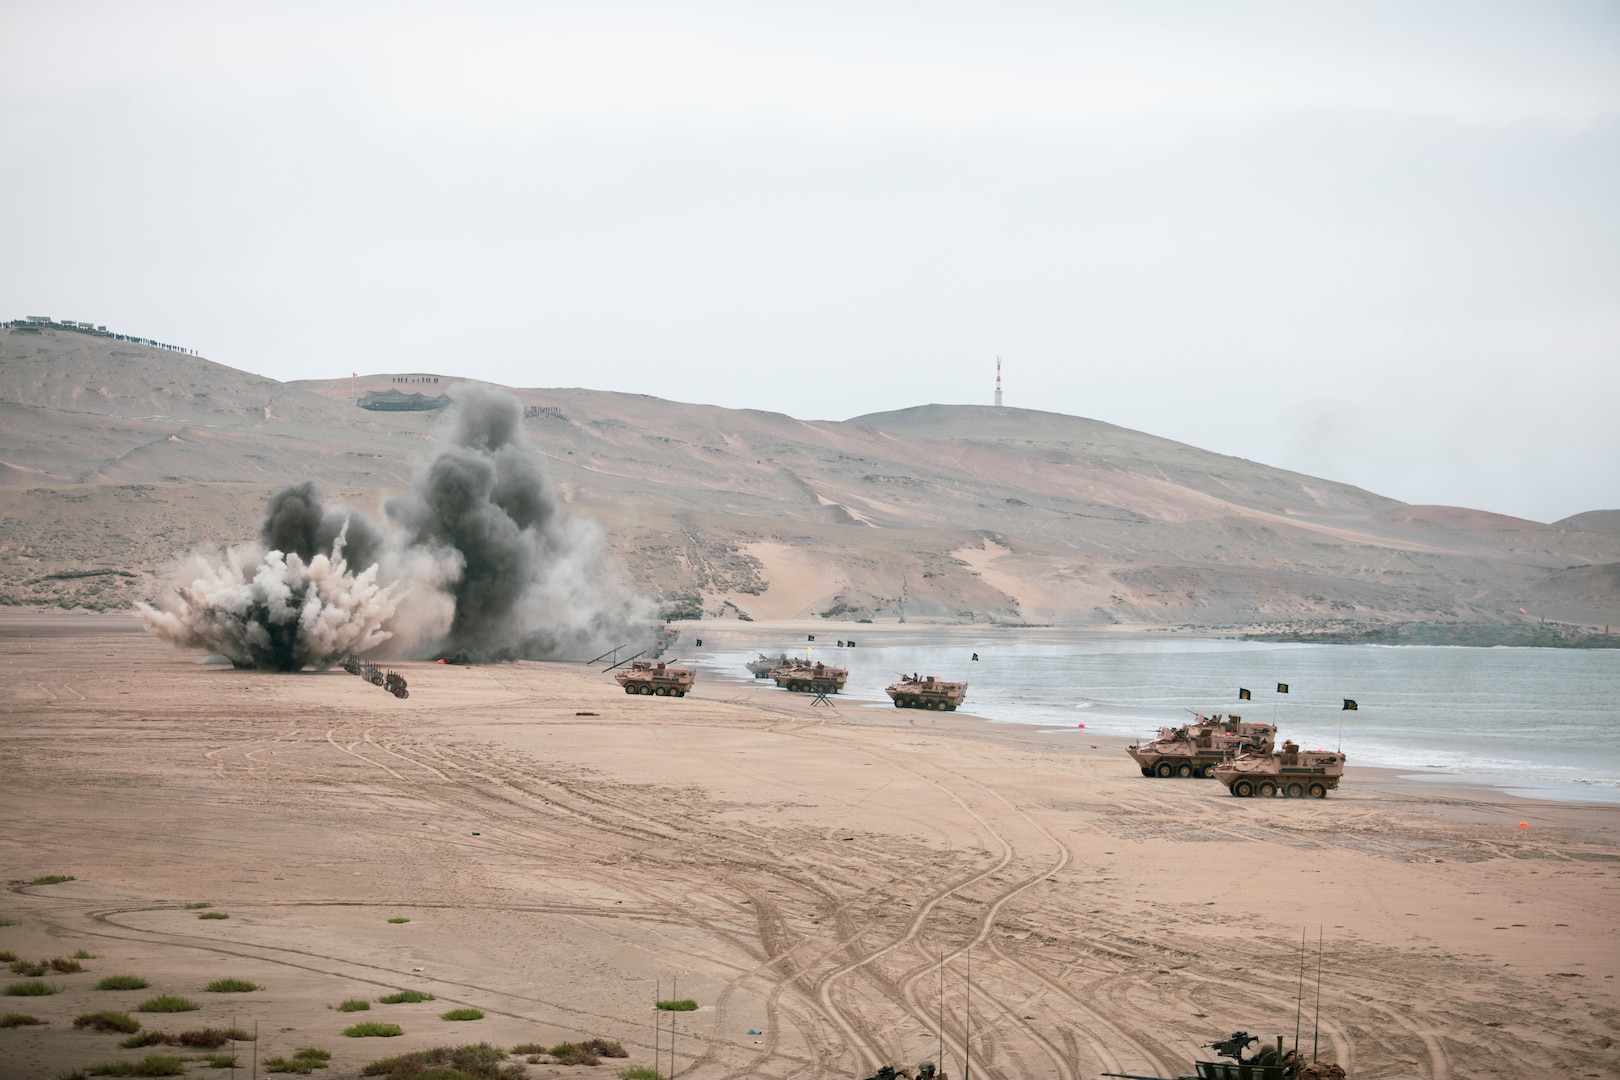 Peruvian marines operate amphibious armored vehicles, from ship-to-shore during an amphibious landing as part of UNITAS LXII in Salinas, Peru, Oct. 2, 2021. UNITAS is the world's longest-running maritime exercise. Hosted this year by Peru, it brings together multinational forces from twenty countries and includes 29 ships, four submarines, and twenty aircraft conducting operations off the coast of Lima and in the jungles of Iquitos. The exercise trains forces to conduct joint maritime operations and focuses on strengthening partnerships and increasing interoperability and capability between participating naval and marine forces.